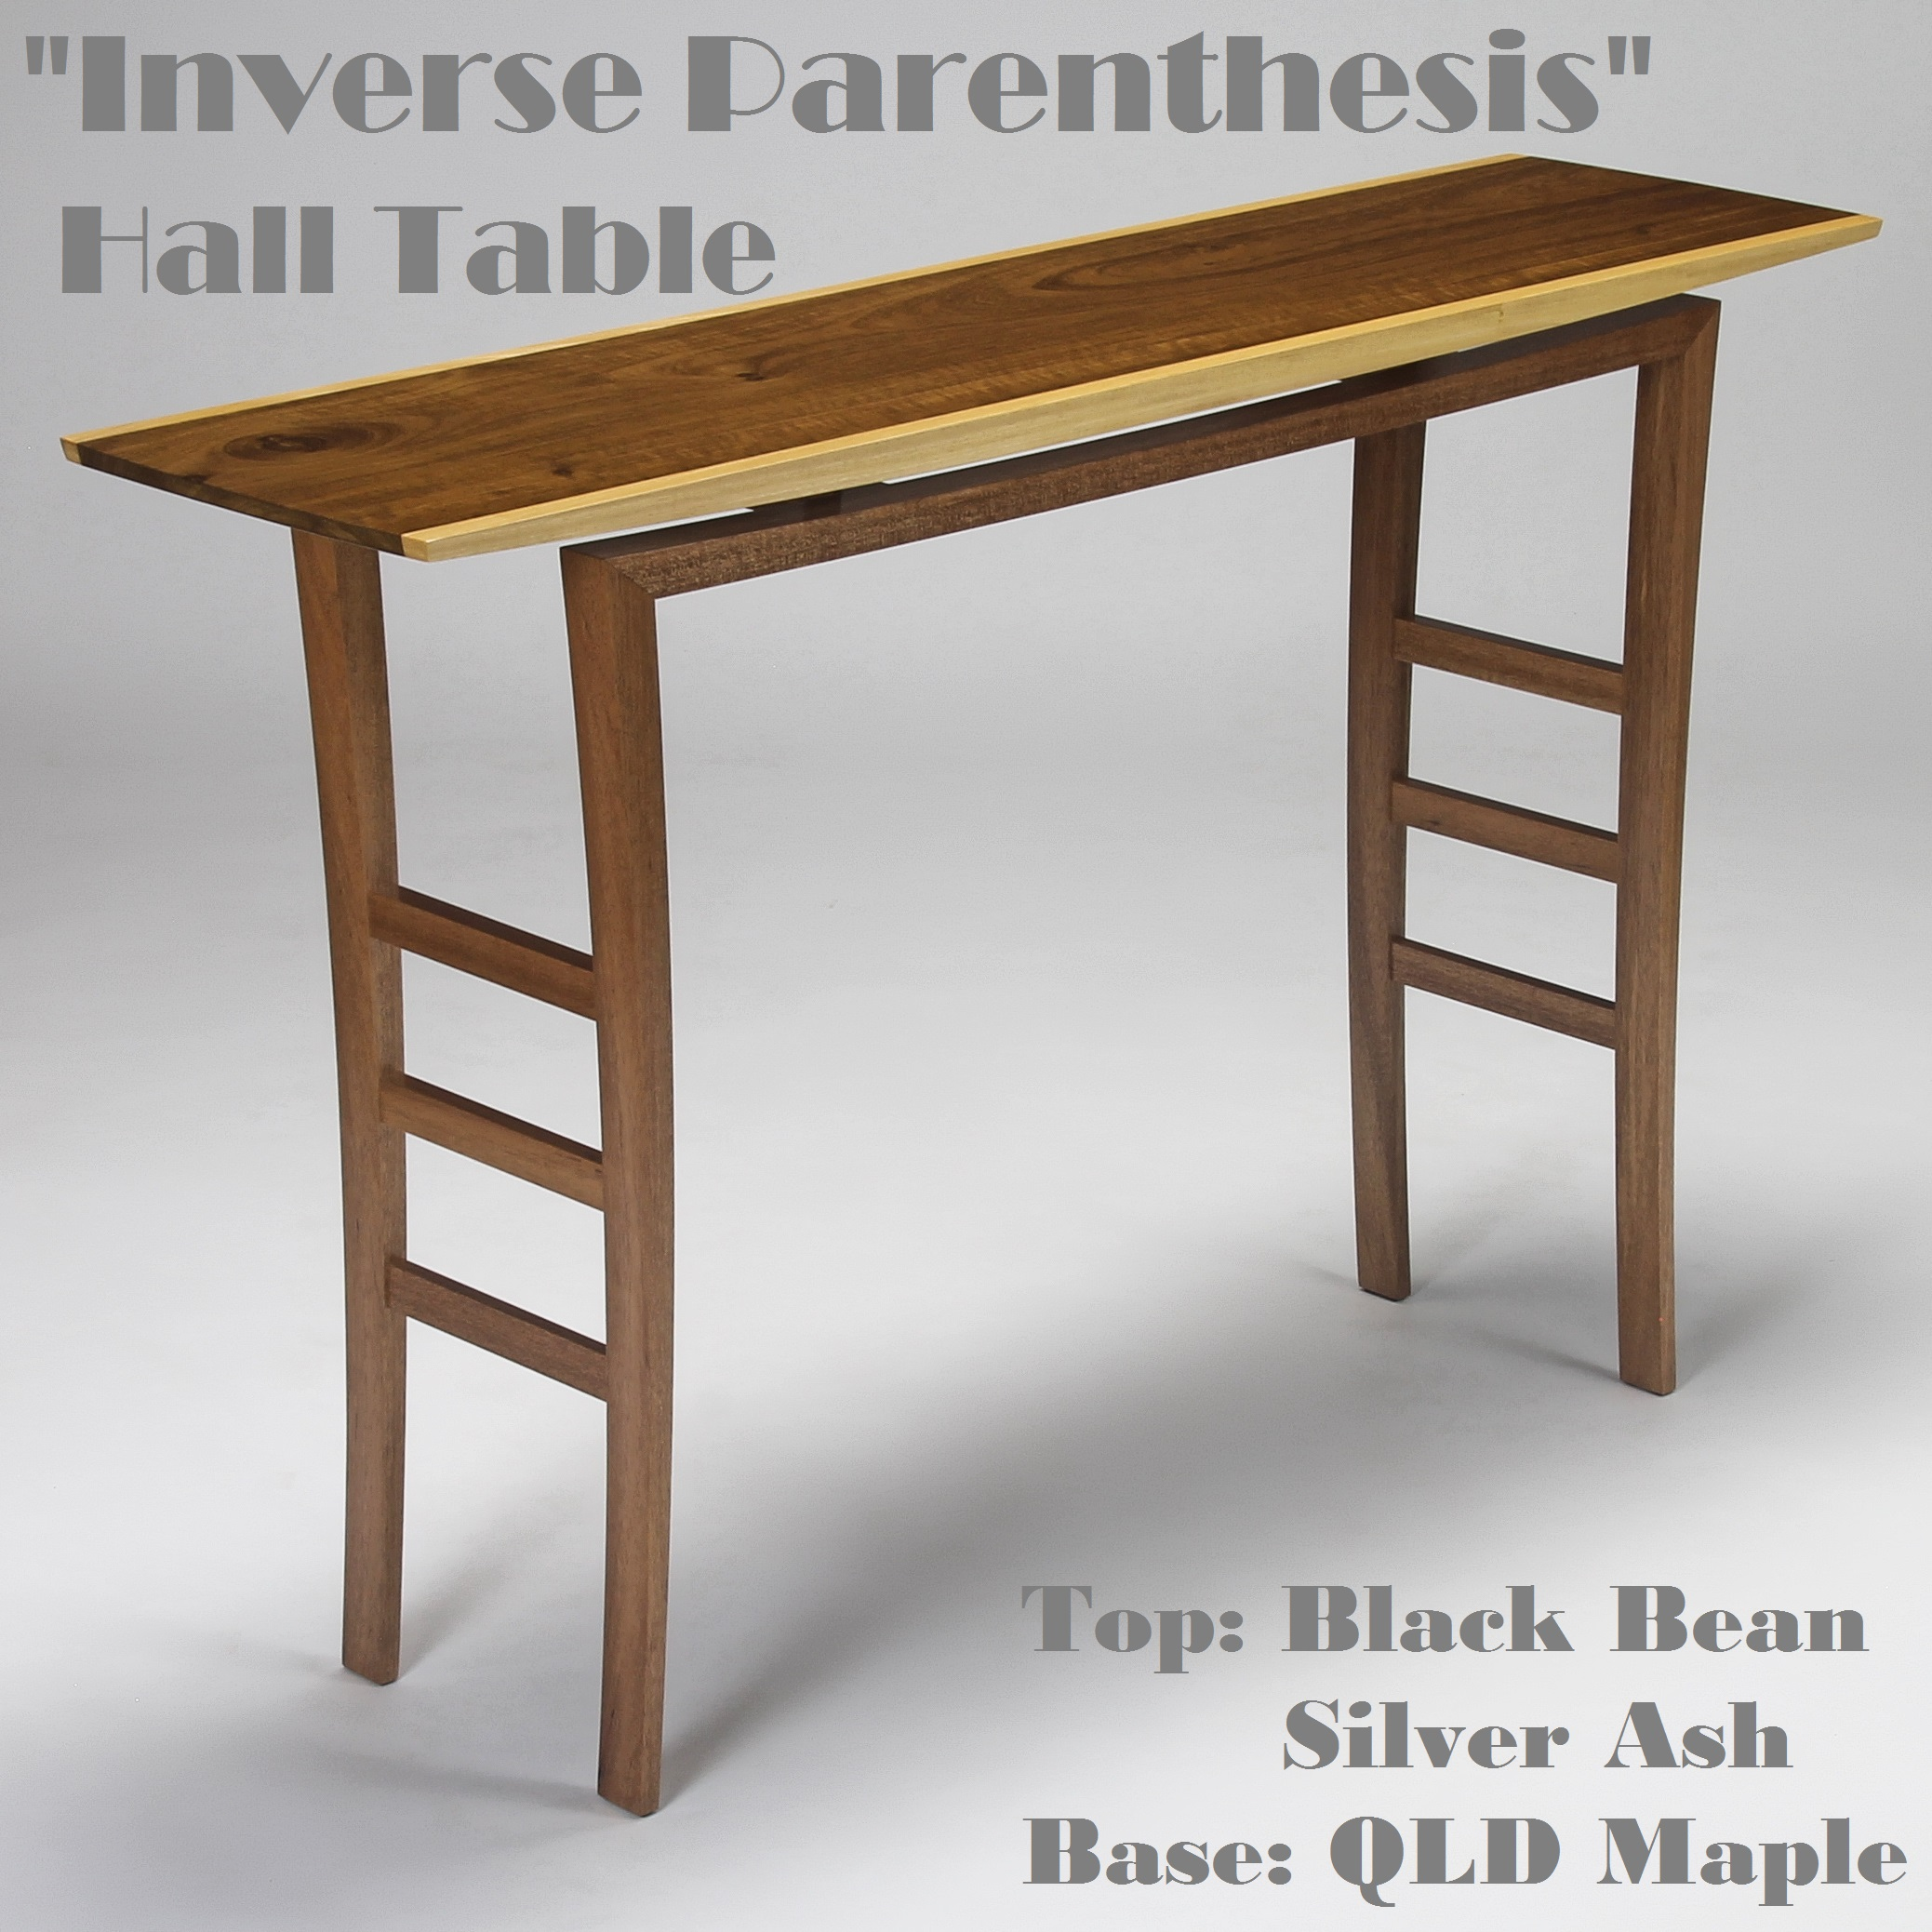 Inverse Parenthesis Hall Table Website 2